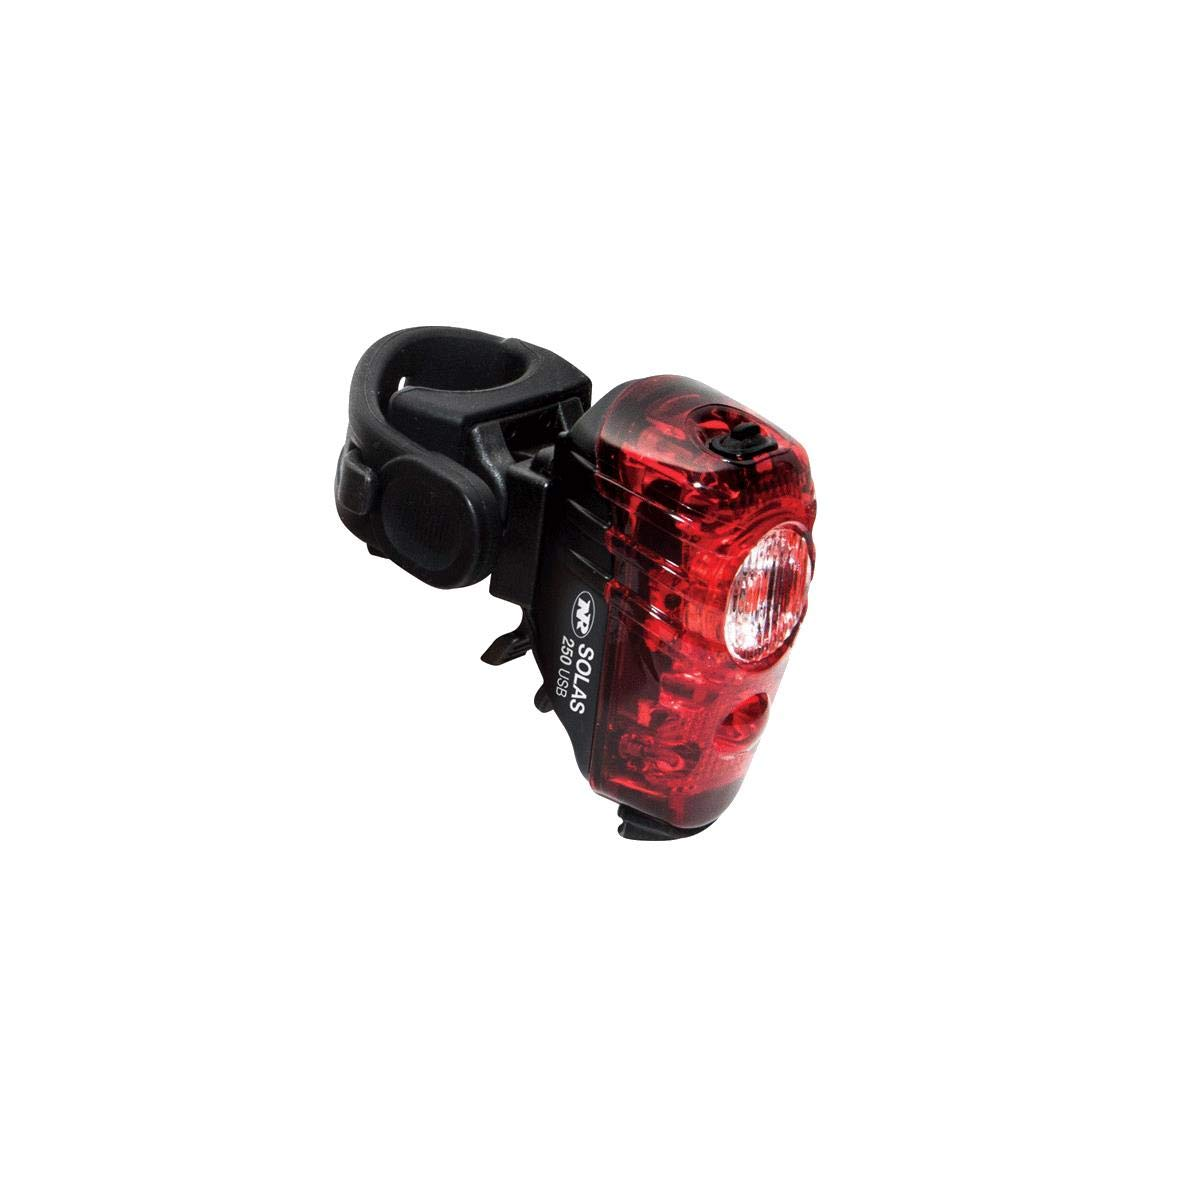 NiteRider Solas 250 Tail Light Black, One Size